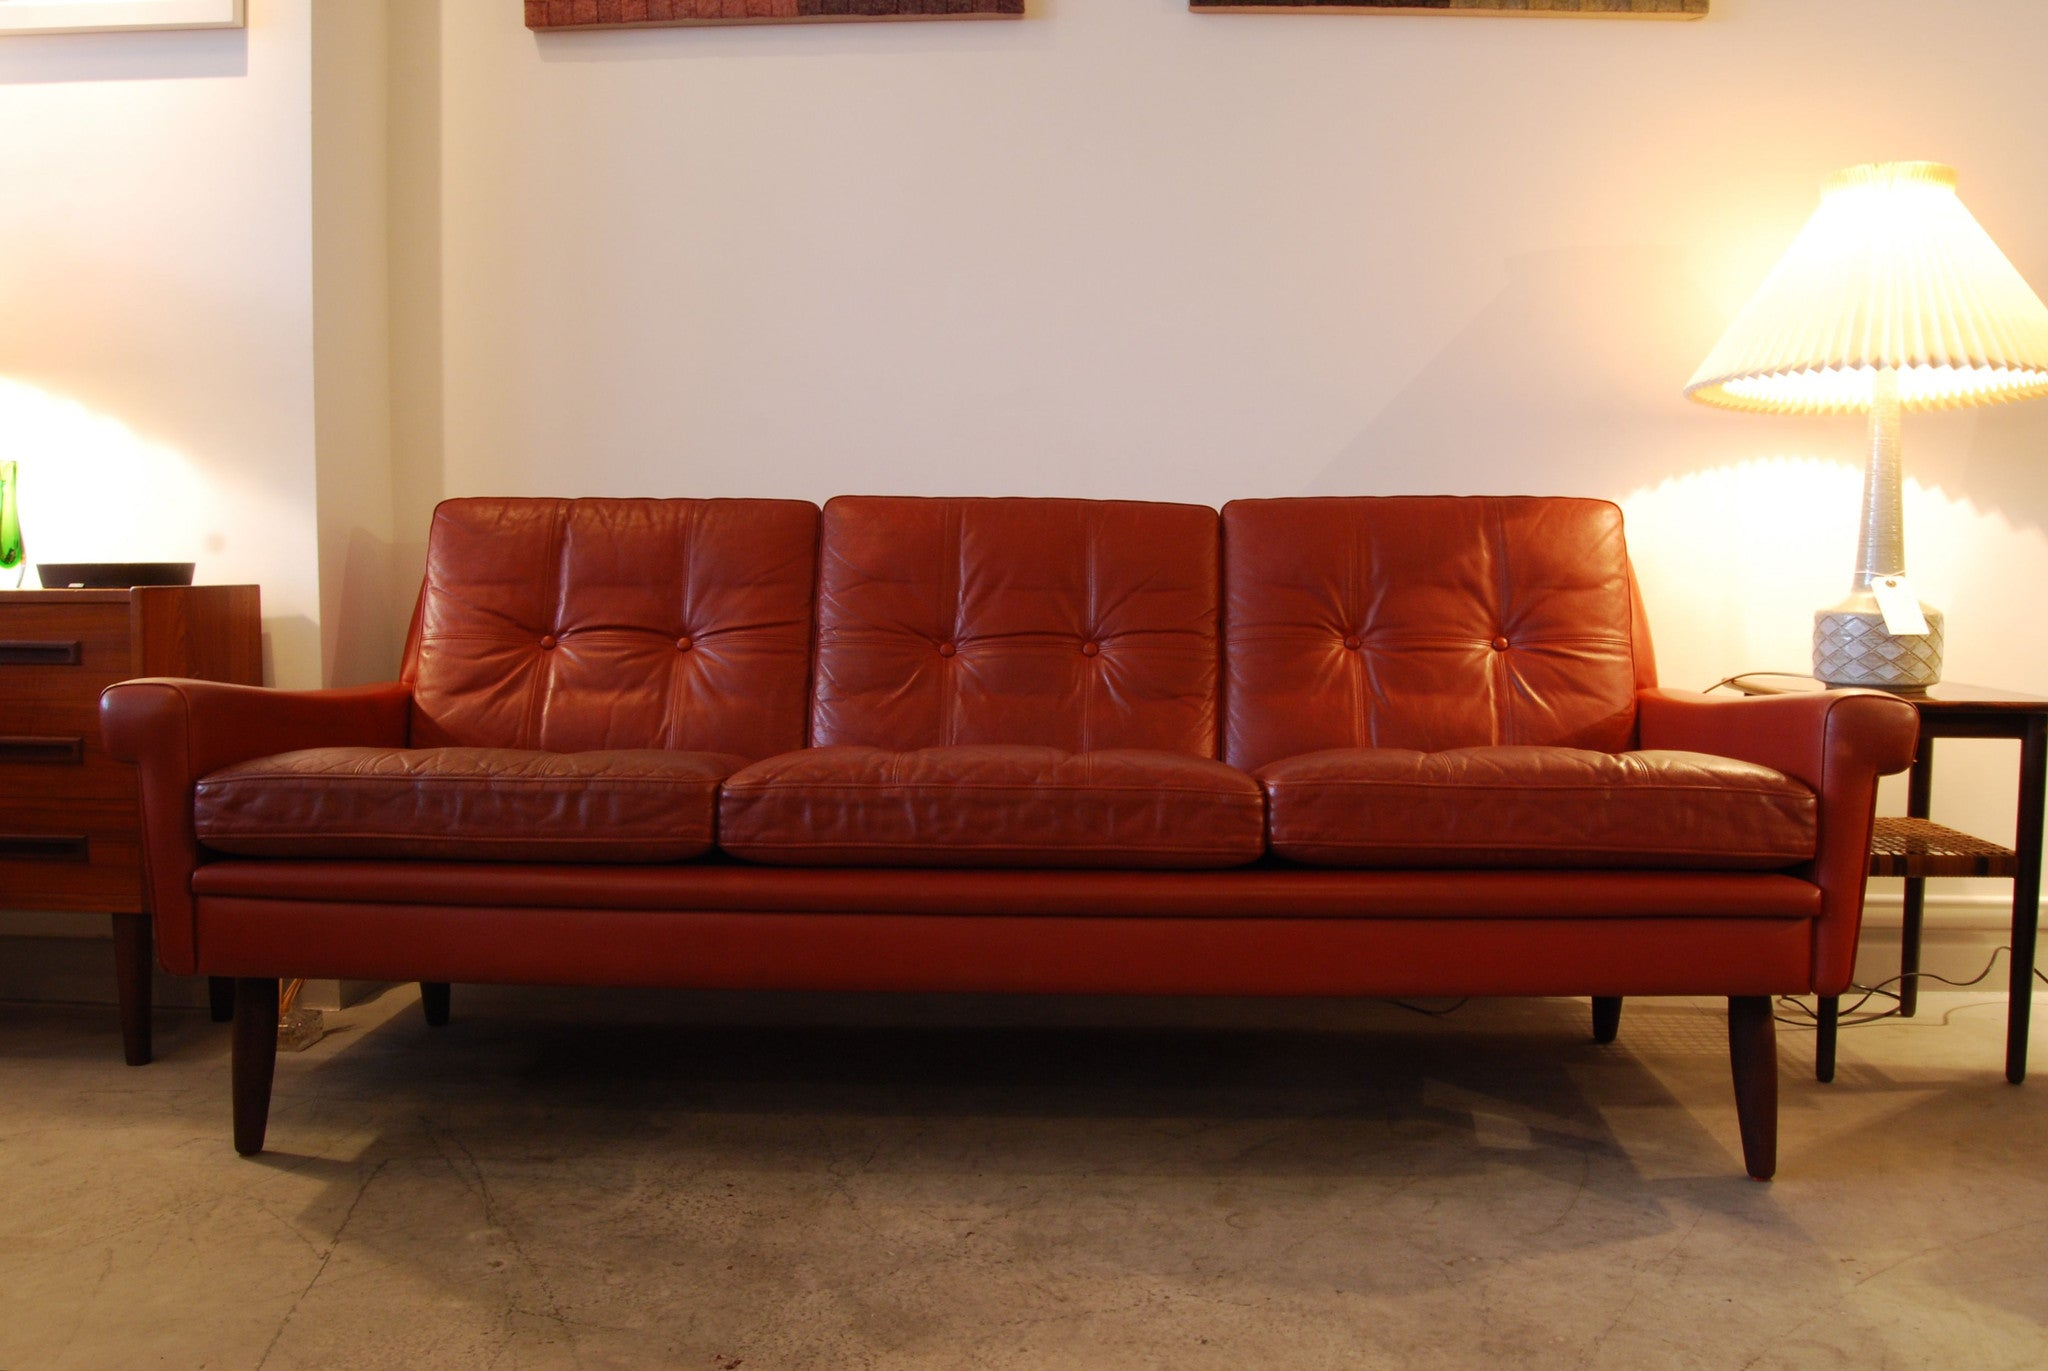 Three seat sofa in red leather